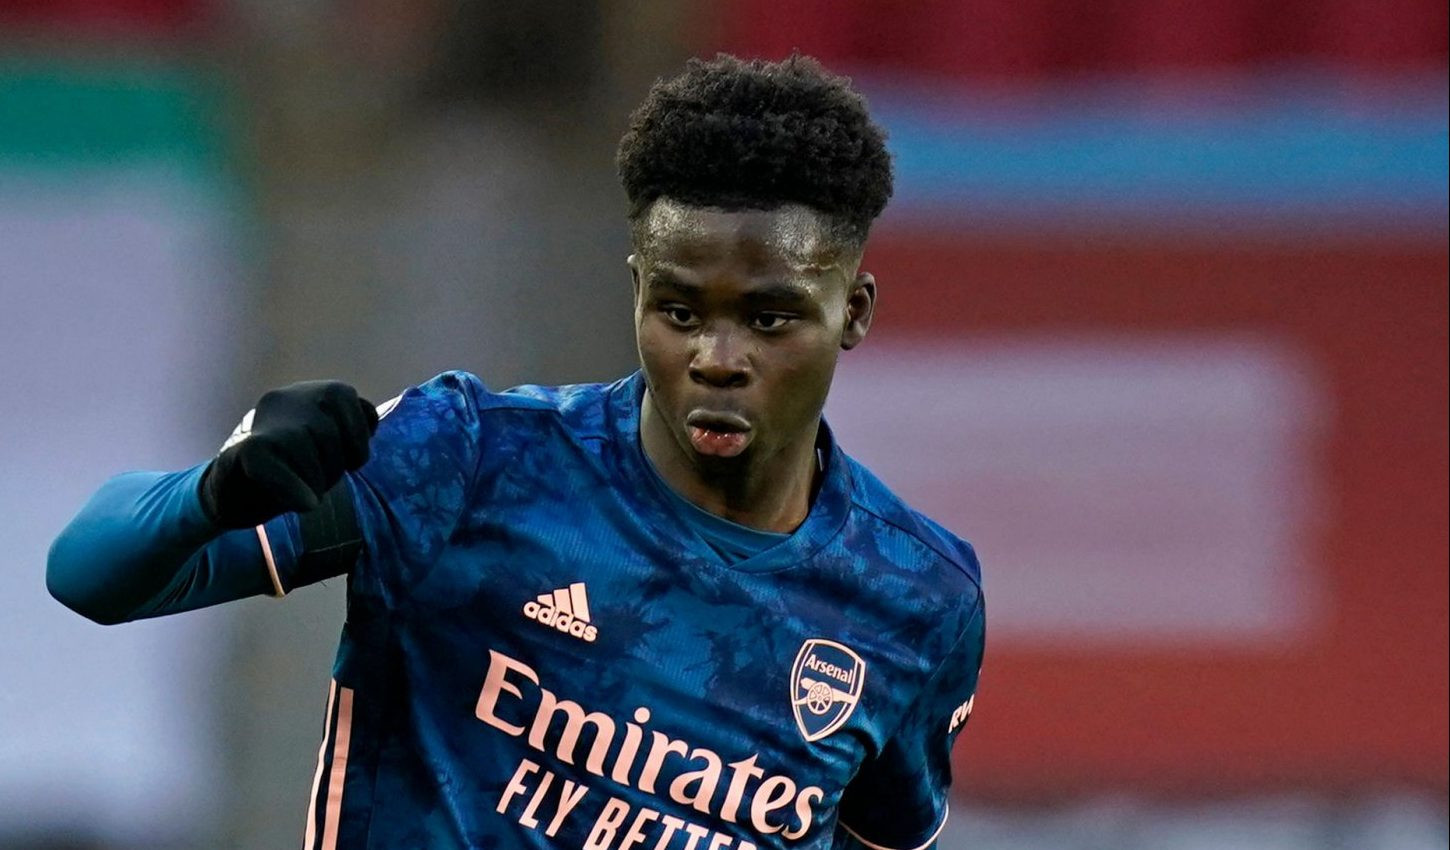 Mikel Arteta issues injury updates on Bukayo Saka, Pierre-Emerick Aubameyang, Martin Odegaard and Emile Smith Rowe